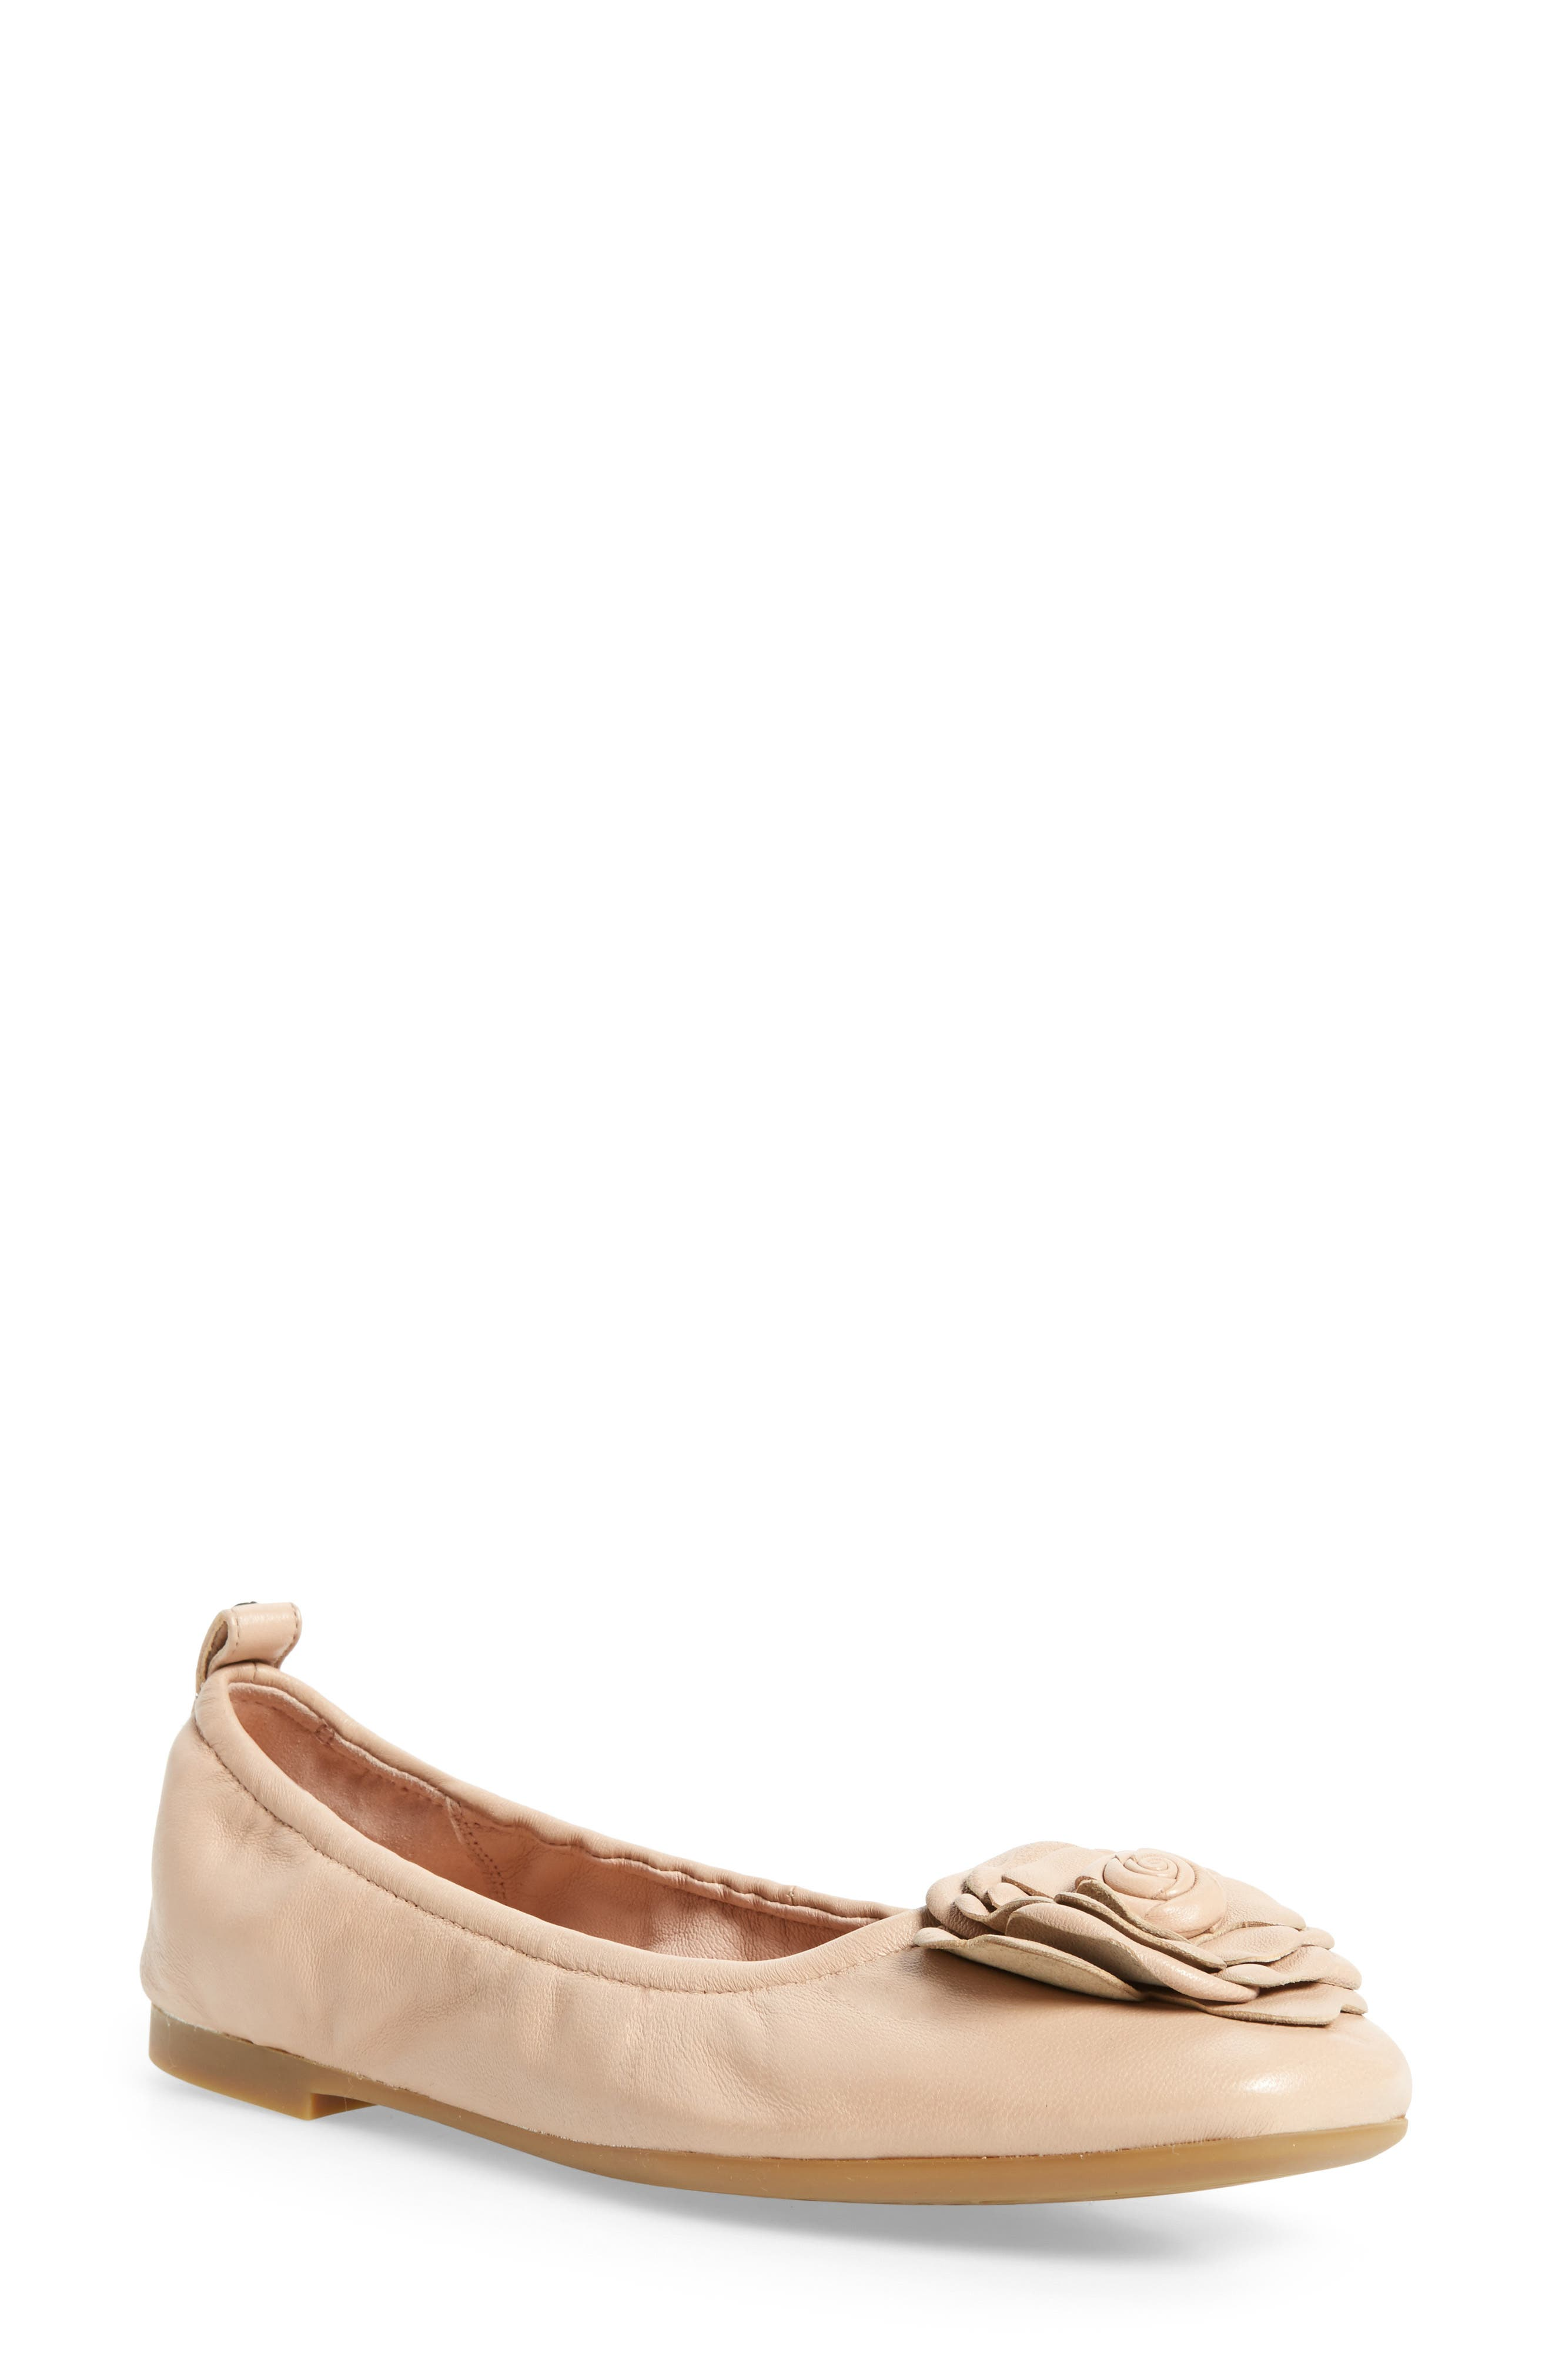 Rosalyn Ballet Flat,                         Main,                         color, Nude Leather